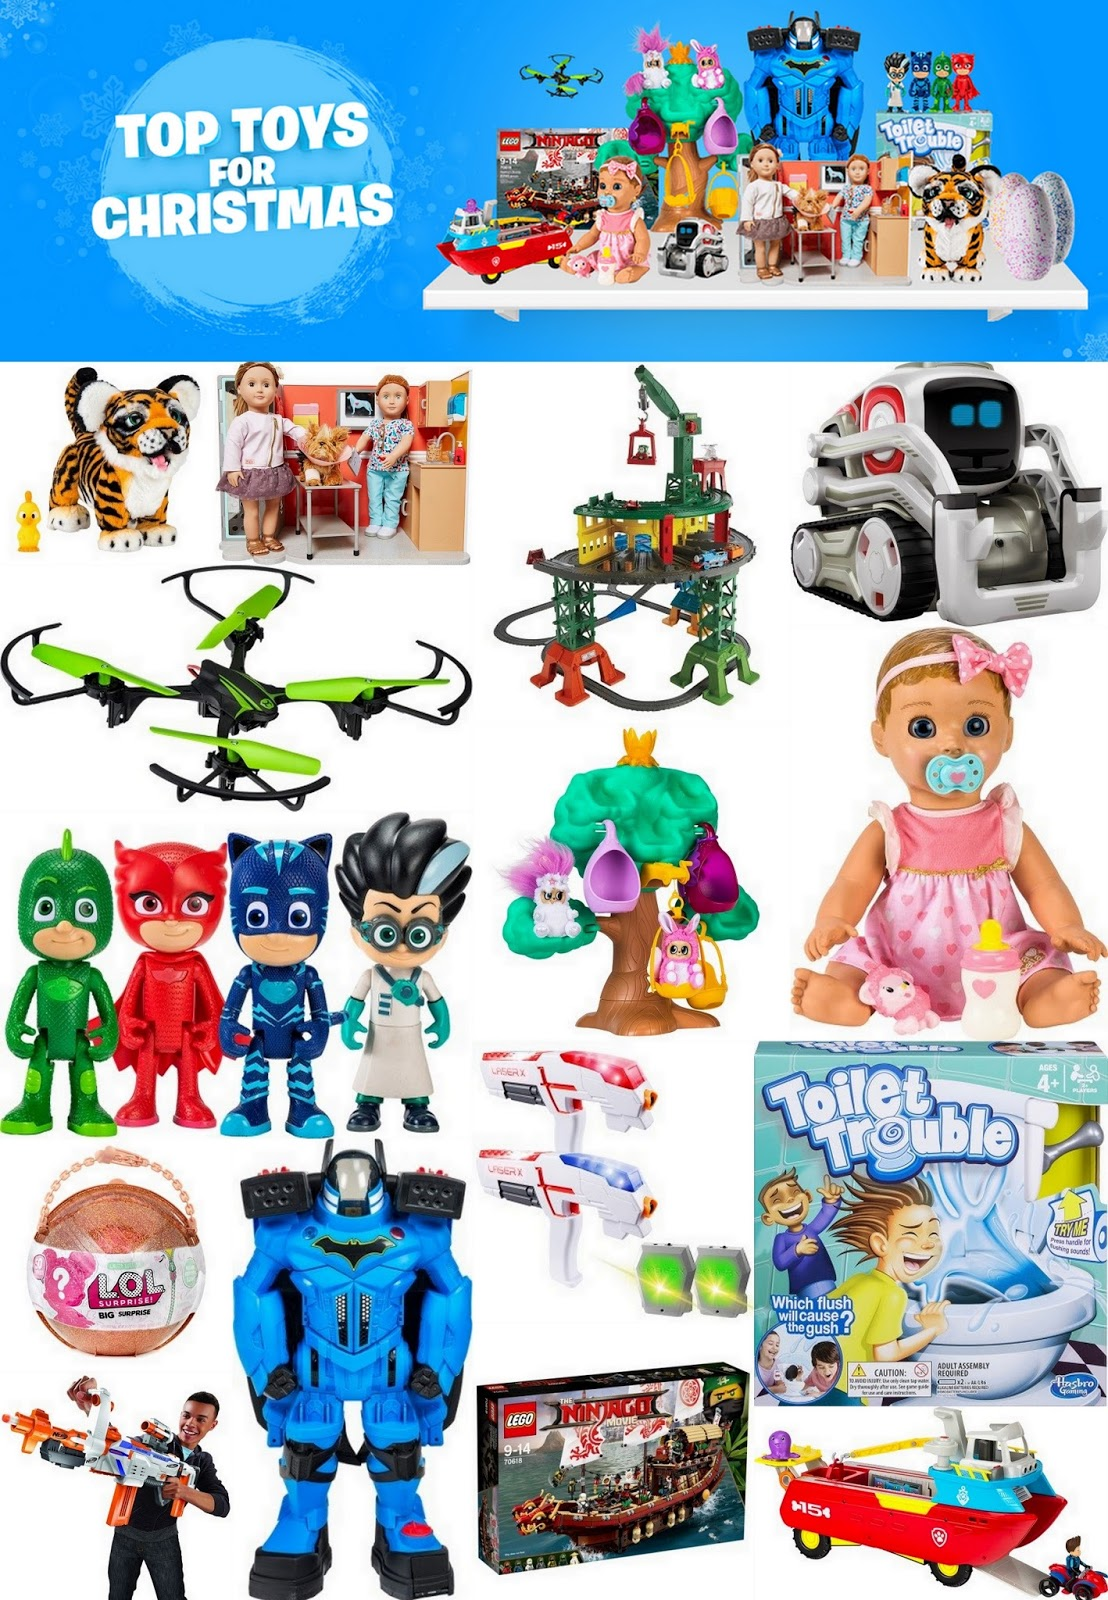 these are the toys predicted to sell incredibly well and judging by the number which are currently out of stock i think the public are already buying